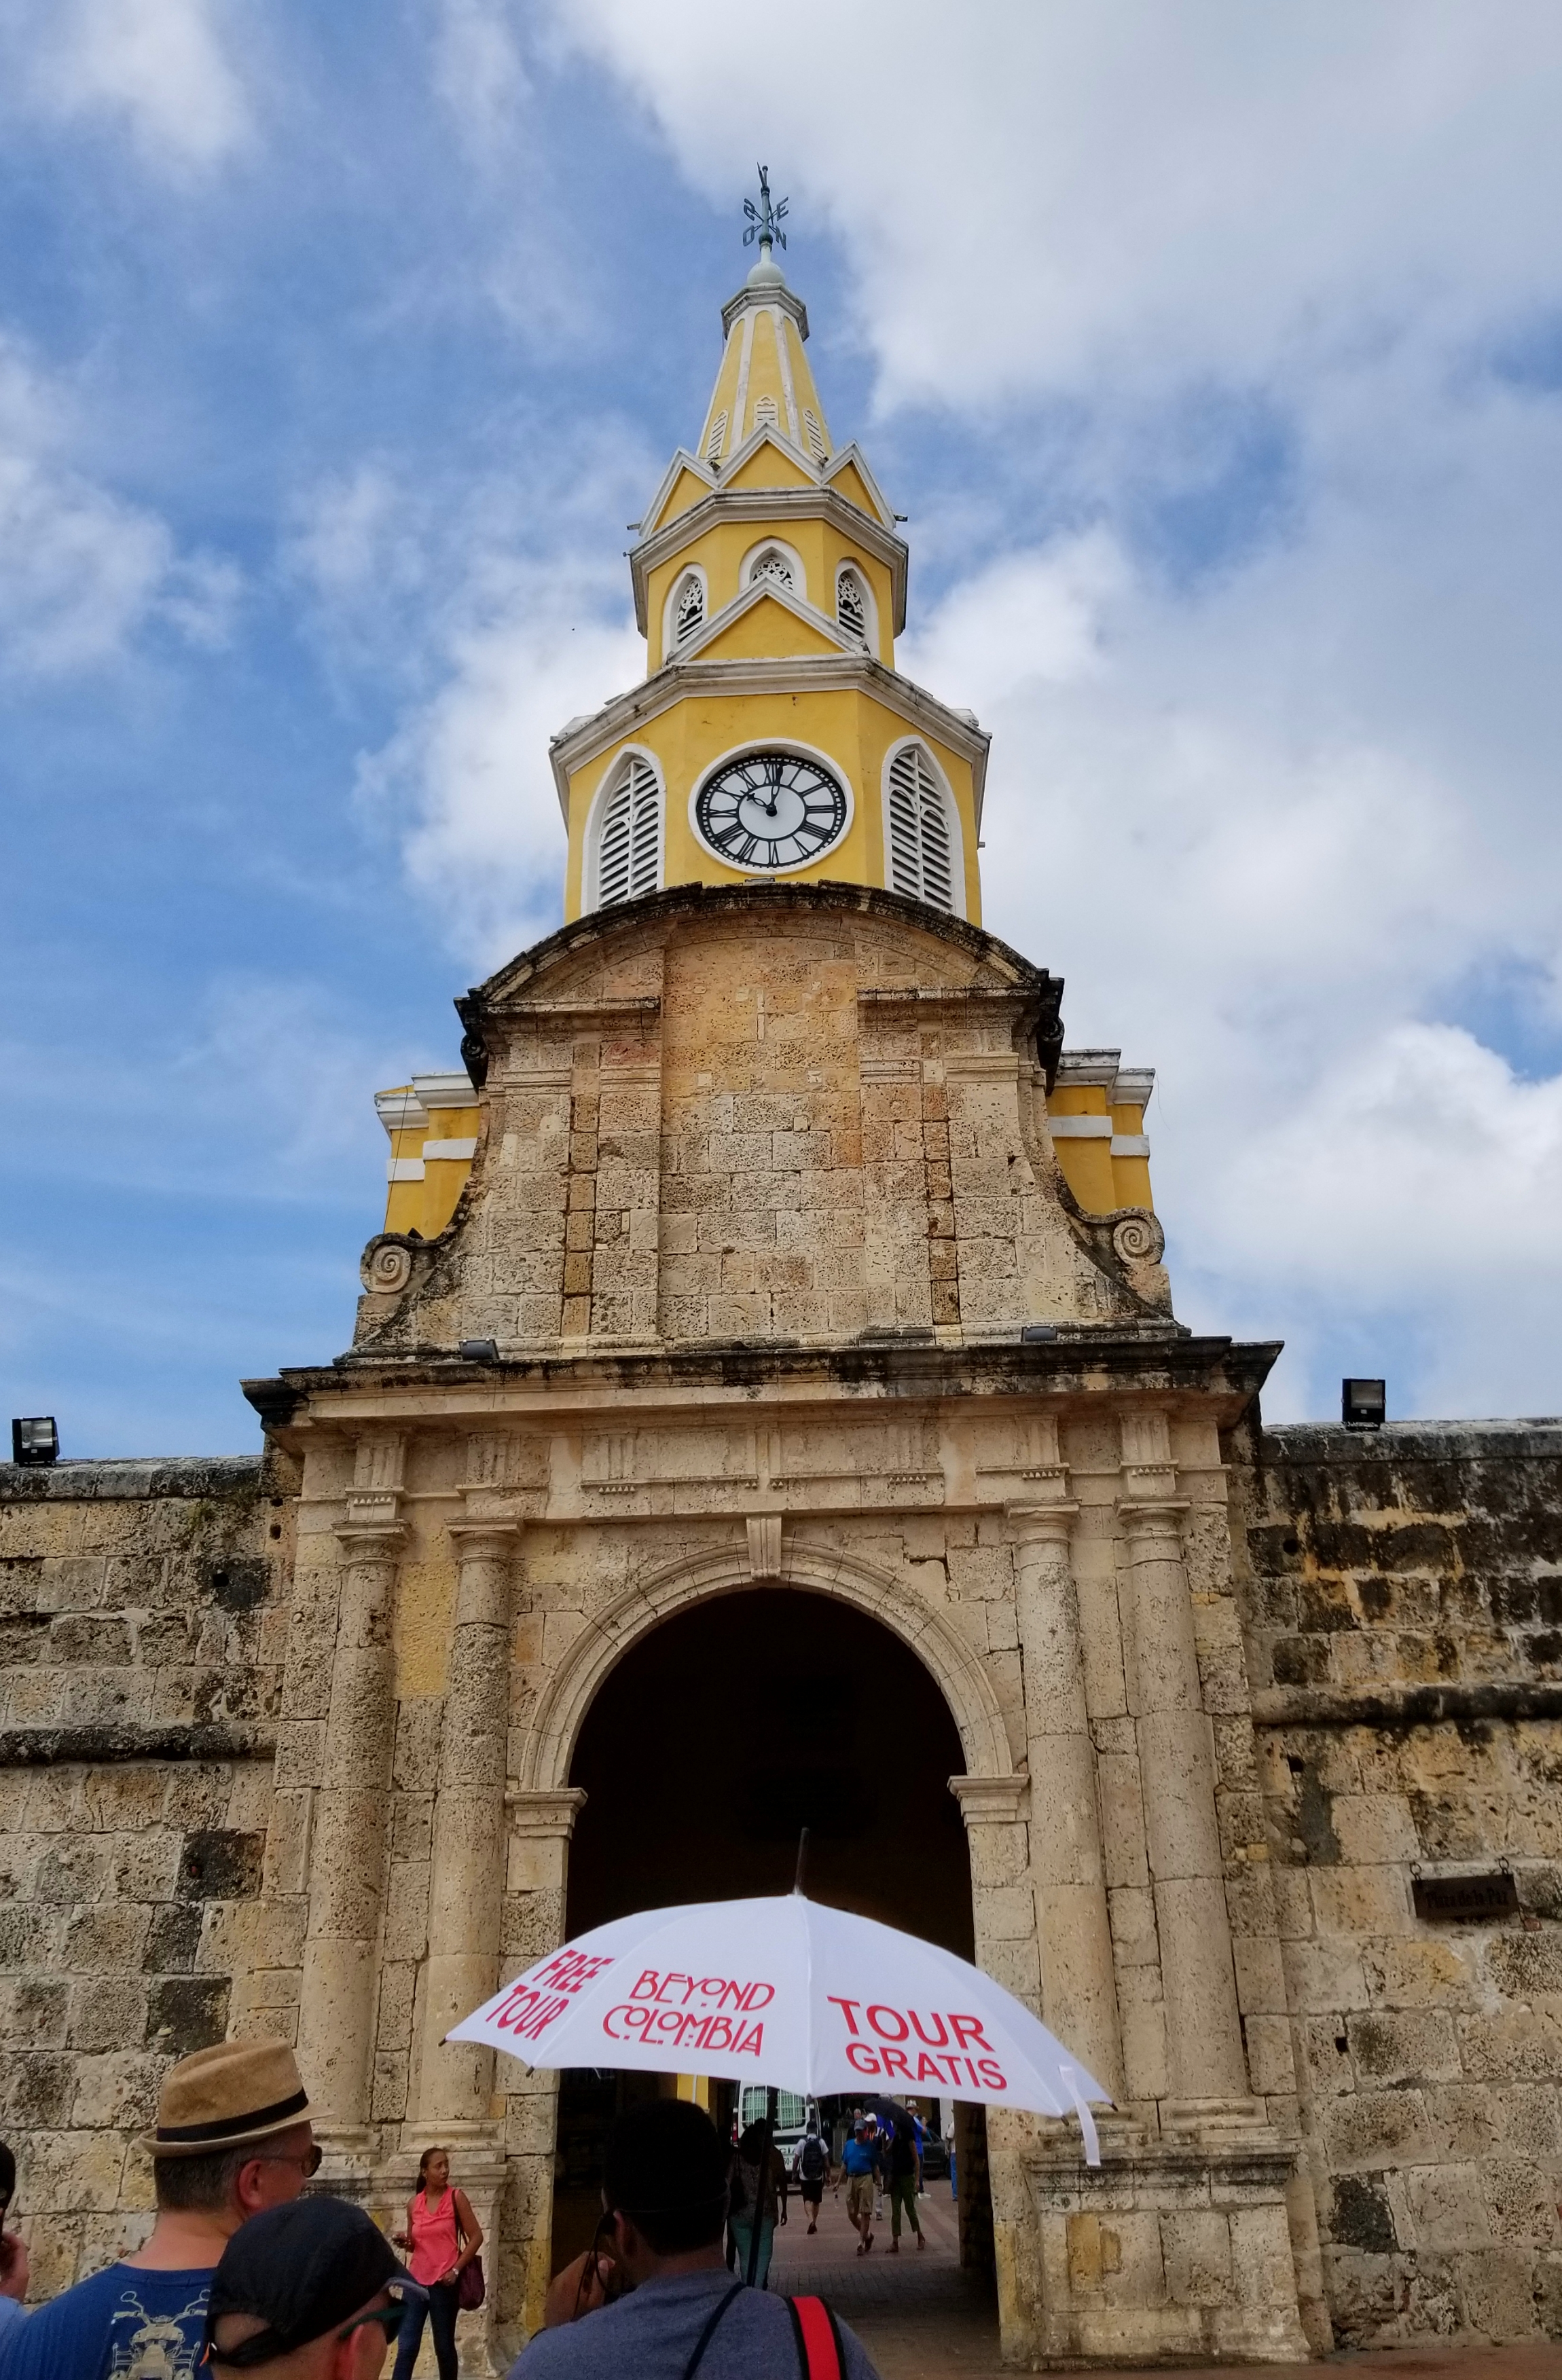 Entering the walled city with Beyond Colombia's free walking tour.